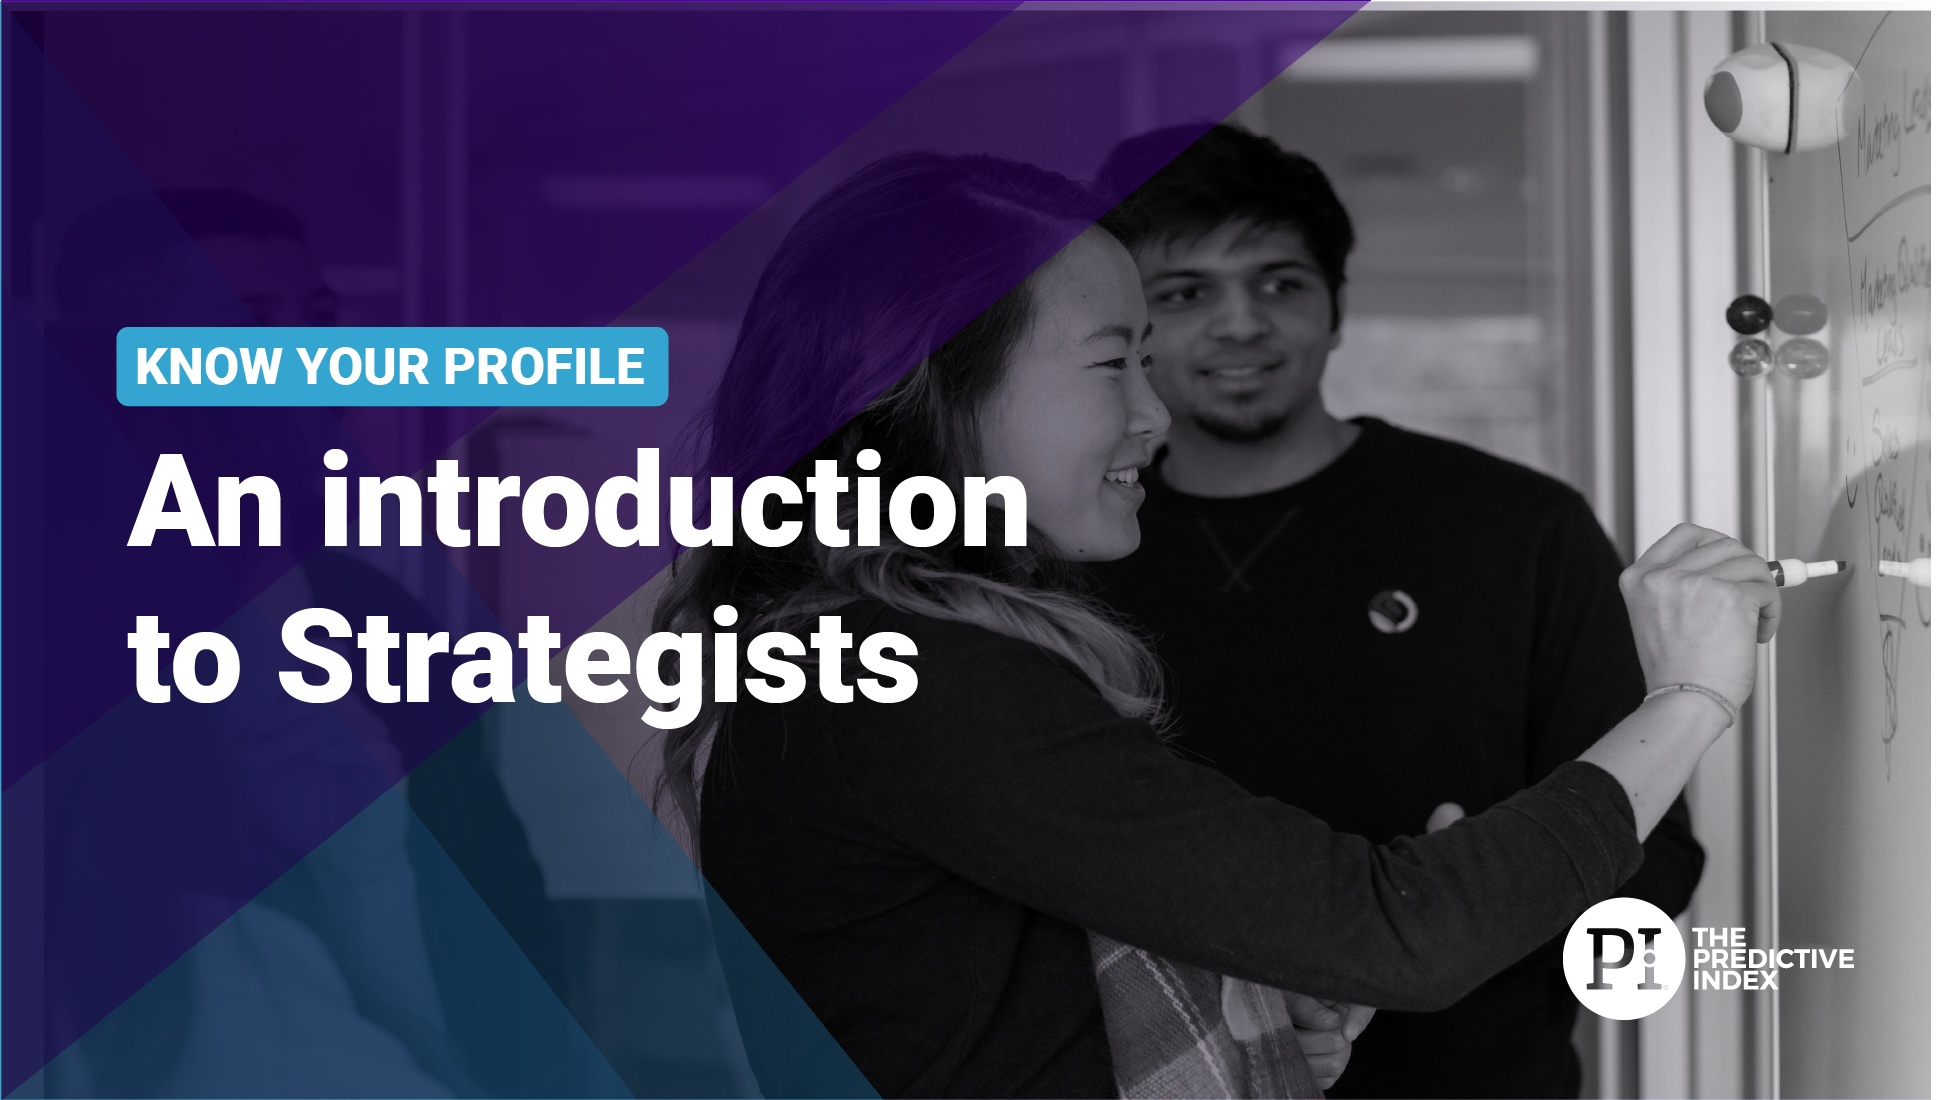 Introducing the Strategist